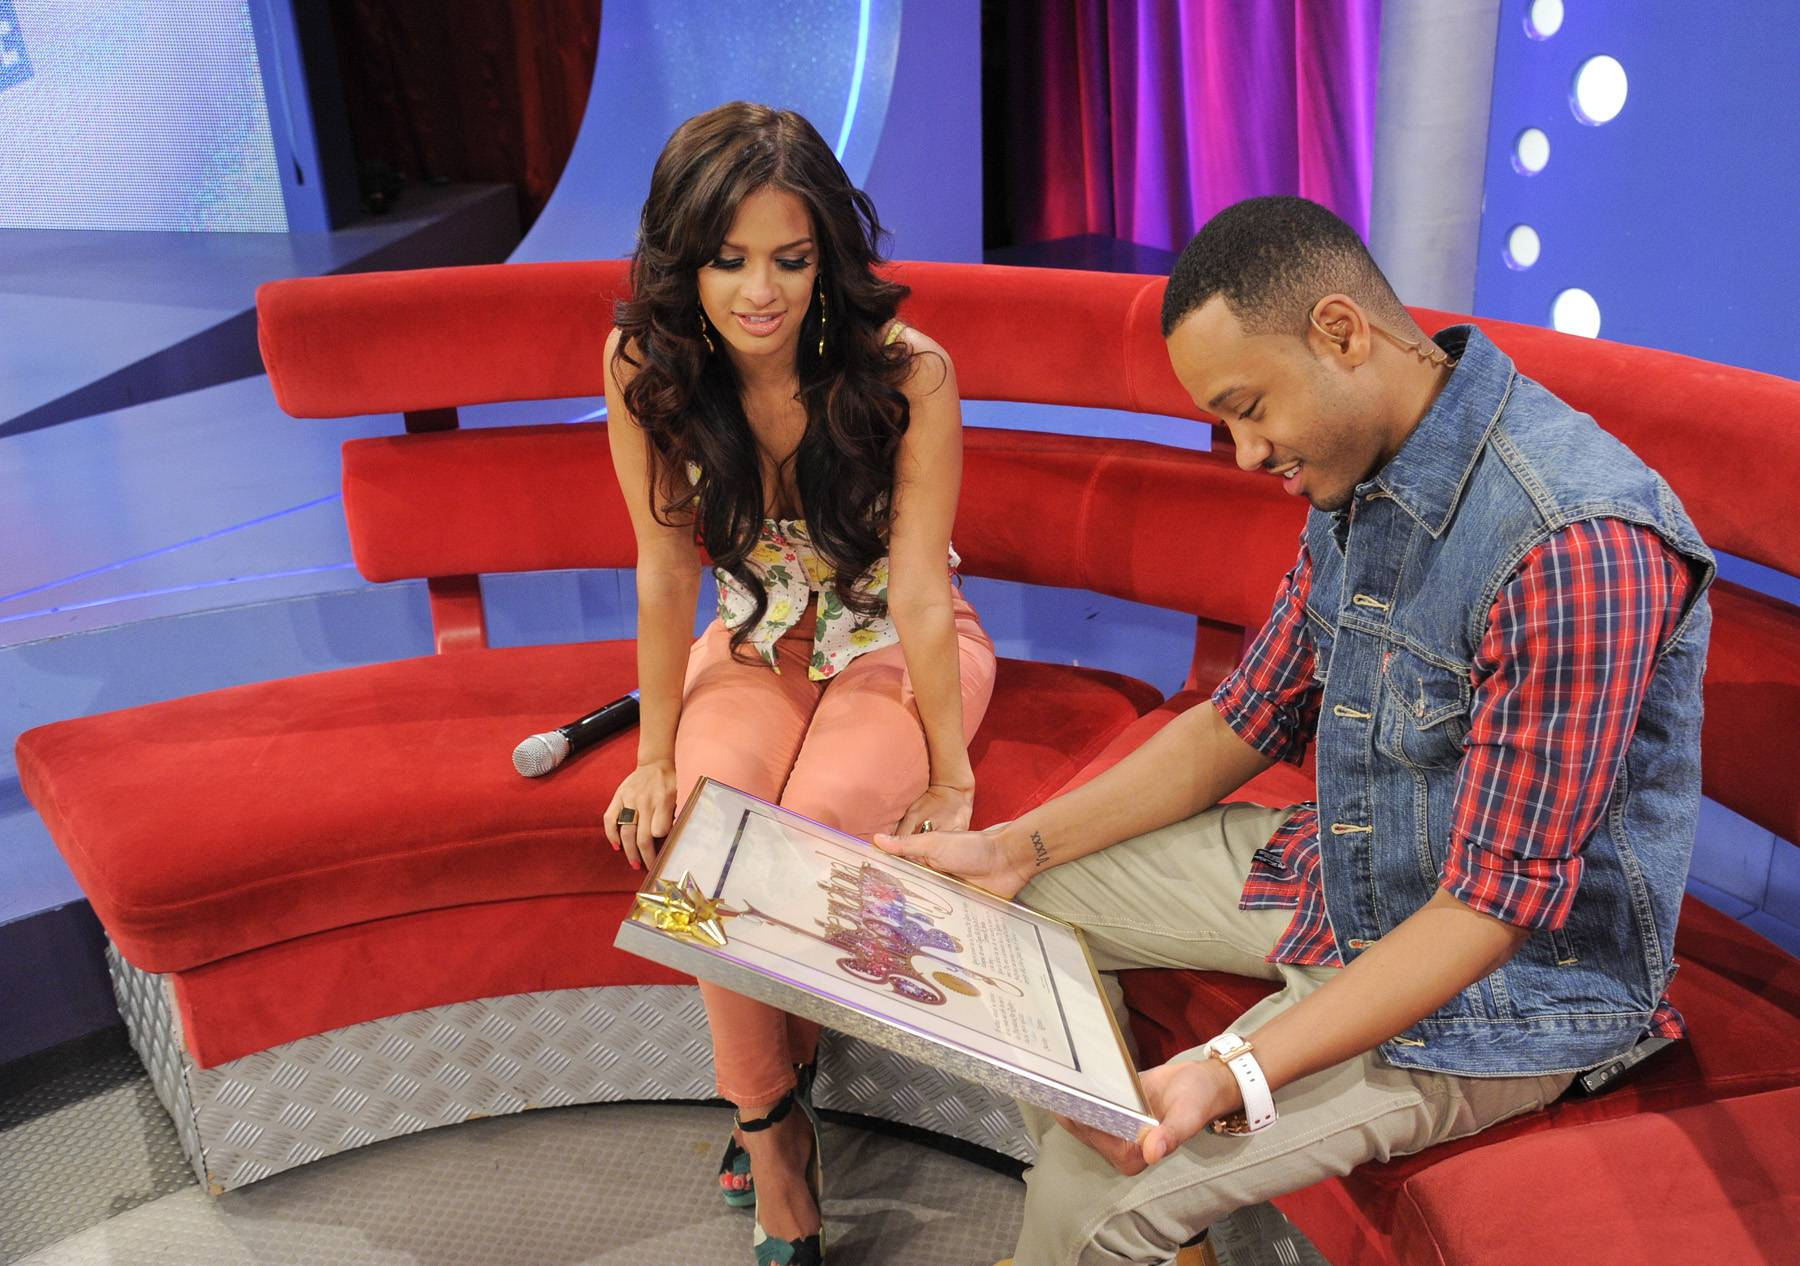 Moment to Examine - Terrence J and Rocsi Diaz check out his plaque stating that a star has been named for him, at 106 & Park, April 20, 2012. (Photo: John Ricard / BET)